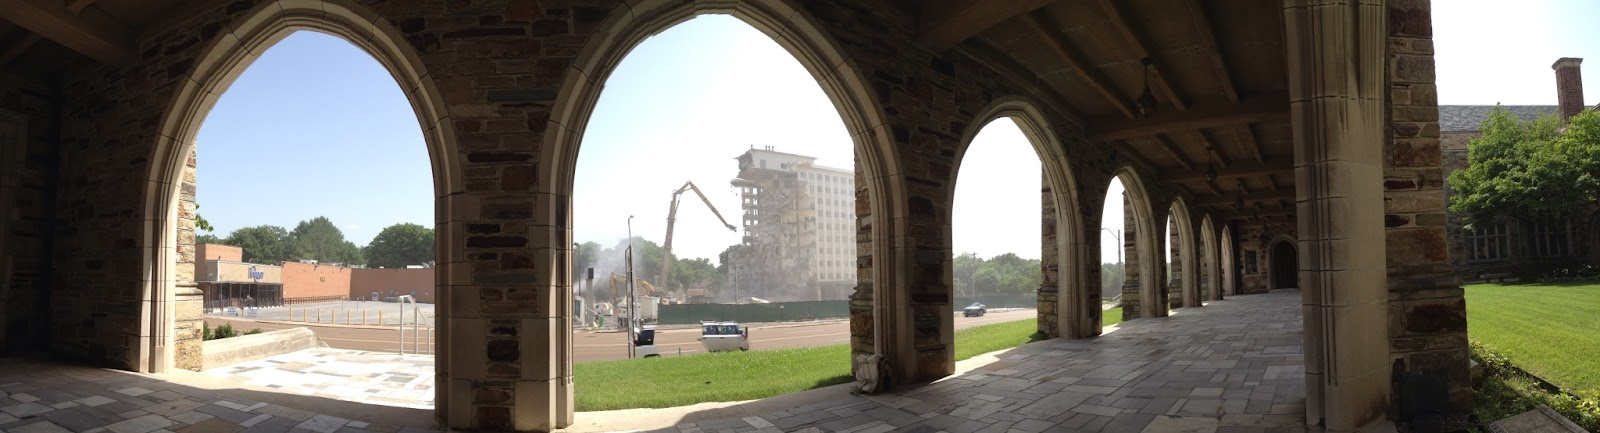 Panorama of 4 church arches and a building being destroyed across the street.